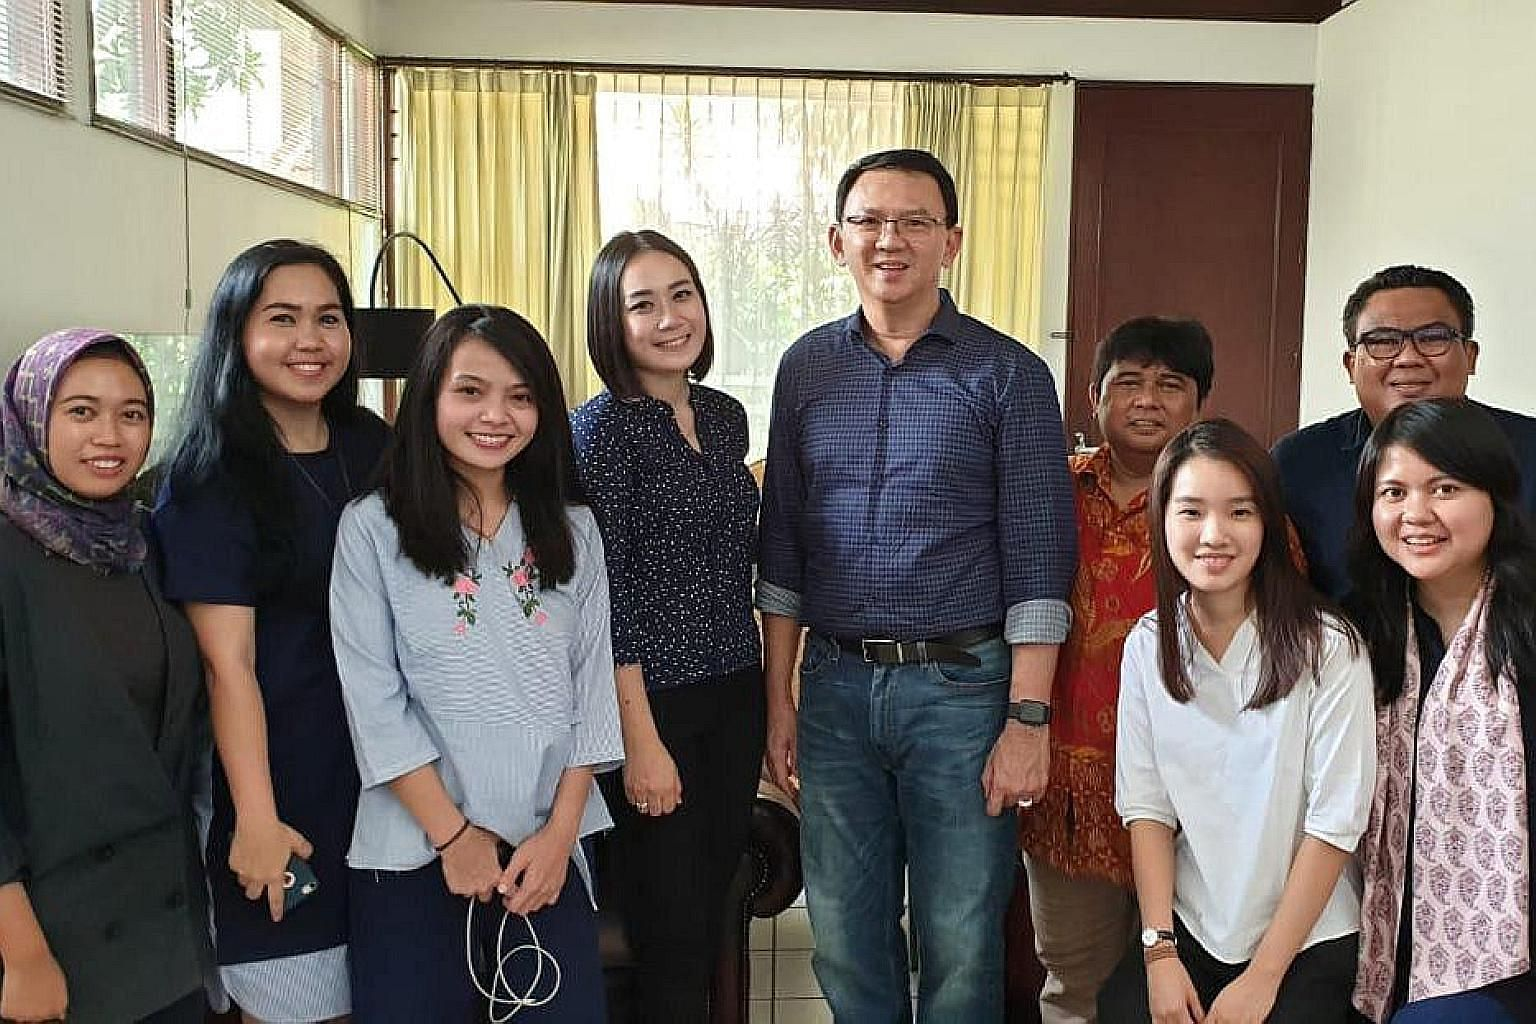 Former Jakarta governor Basuki Tjahaja Purnama is seen here in a photo by Antara Foto with his relatives after his release from prison yesterday. Media reports say marriage forms for his wedding have been submitted.